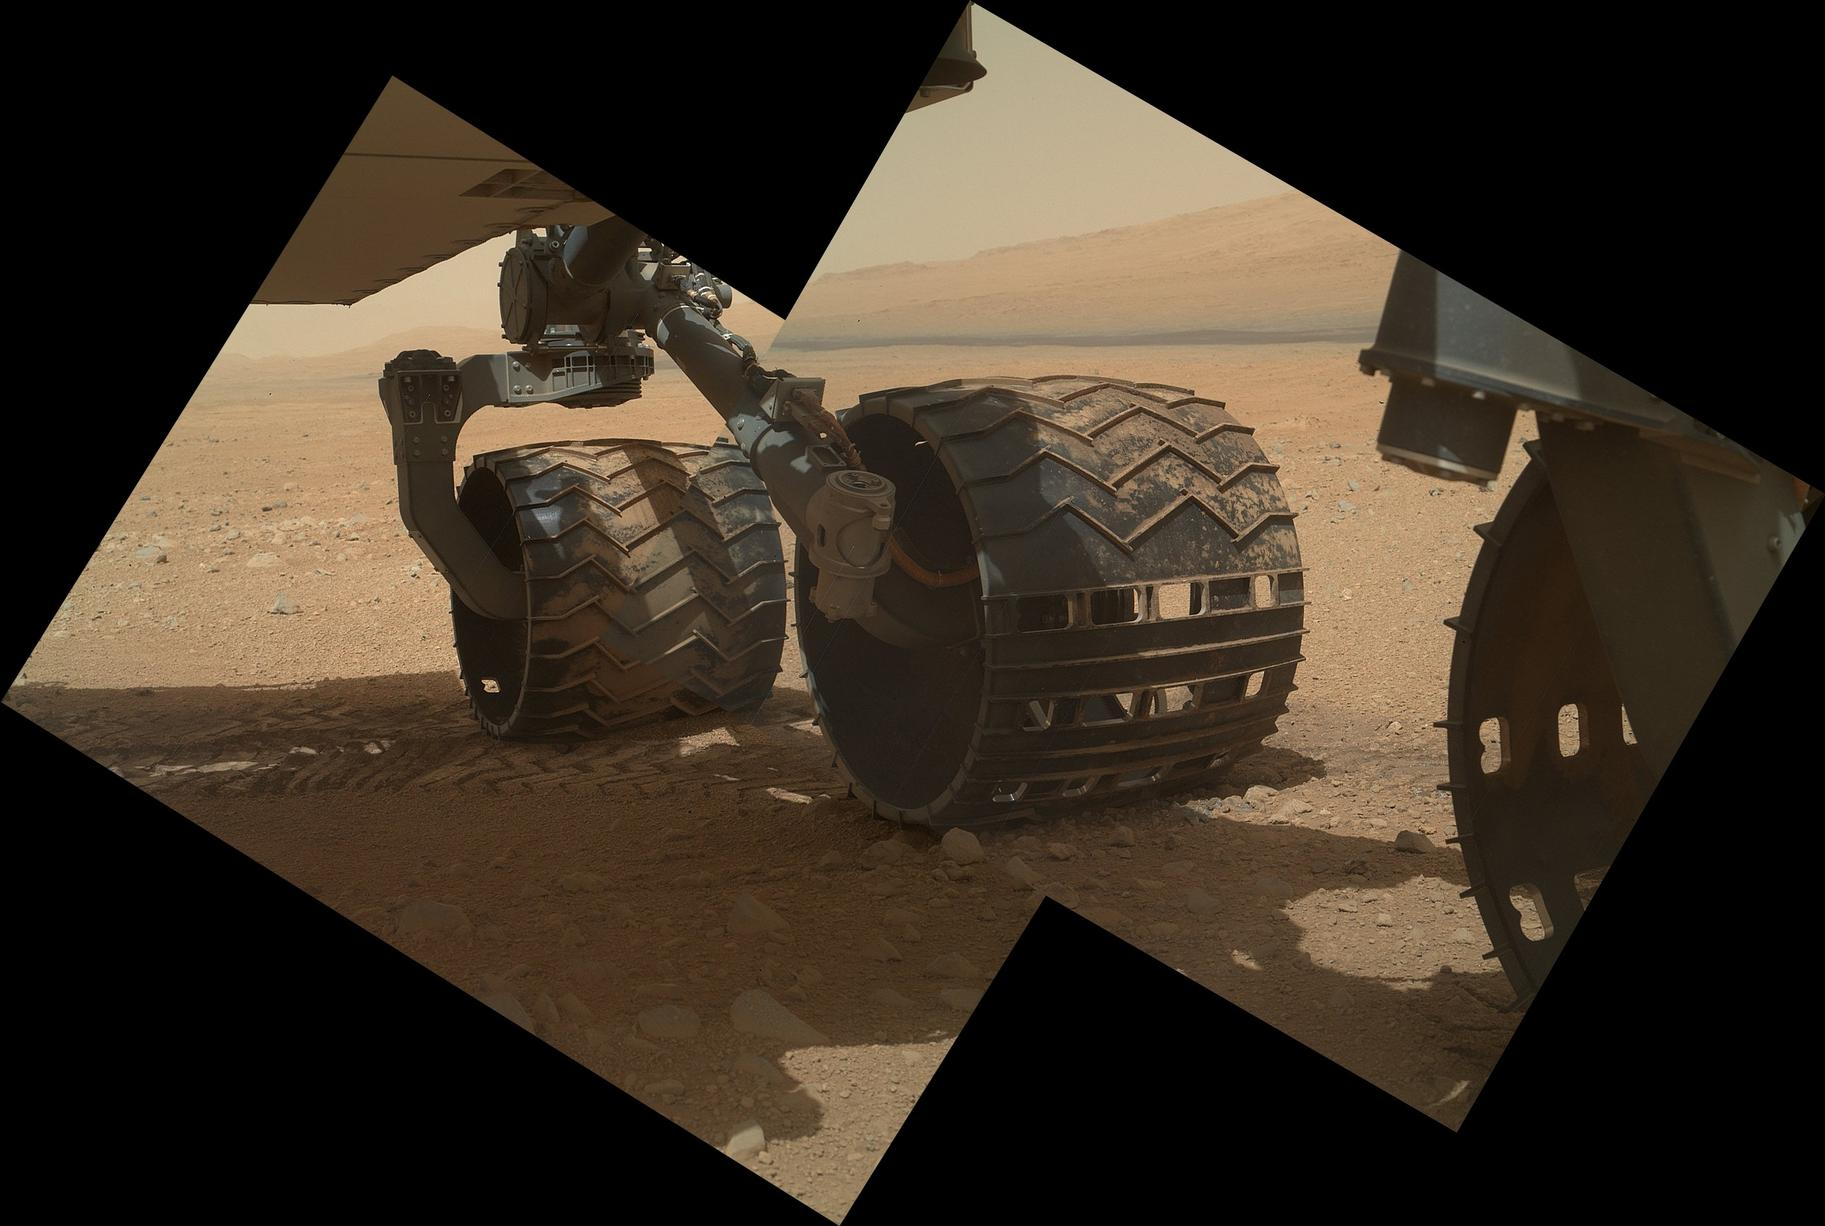 This view of the three left wheels of NASA's Mars rover Curiosity combines two images that were taken by the rover's Mars Hand Lens Imager (MAHLI) during the 34th Martian day, or sol, of Curiosity's work on Mars (Sept. 9, 2012).